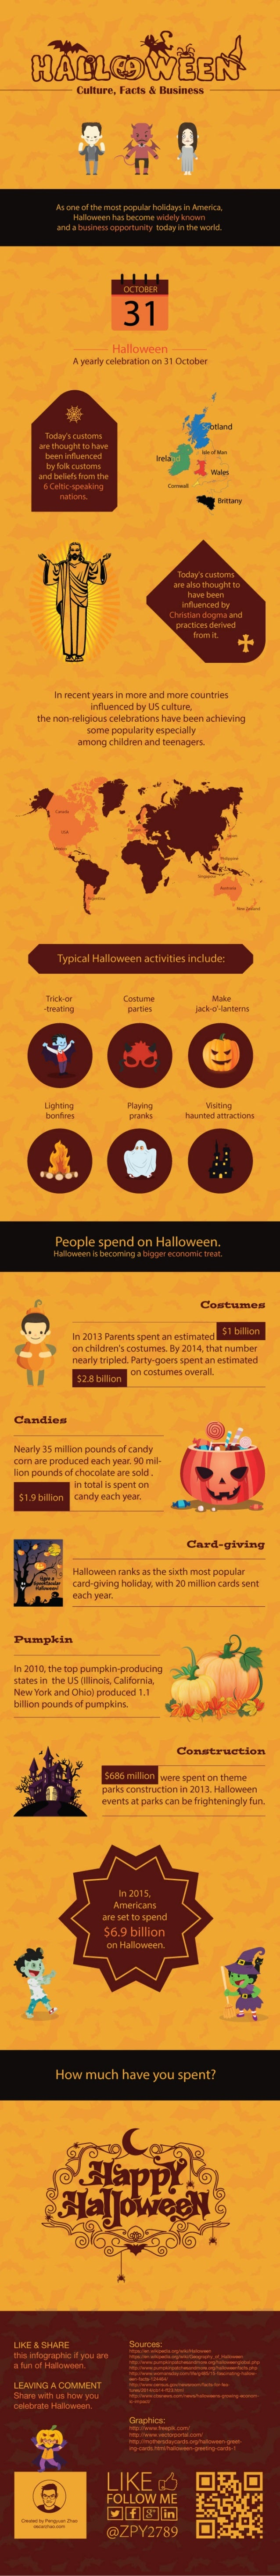 Halloween: culture, facts & business (Infographic)